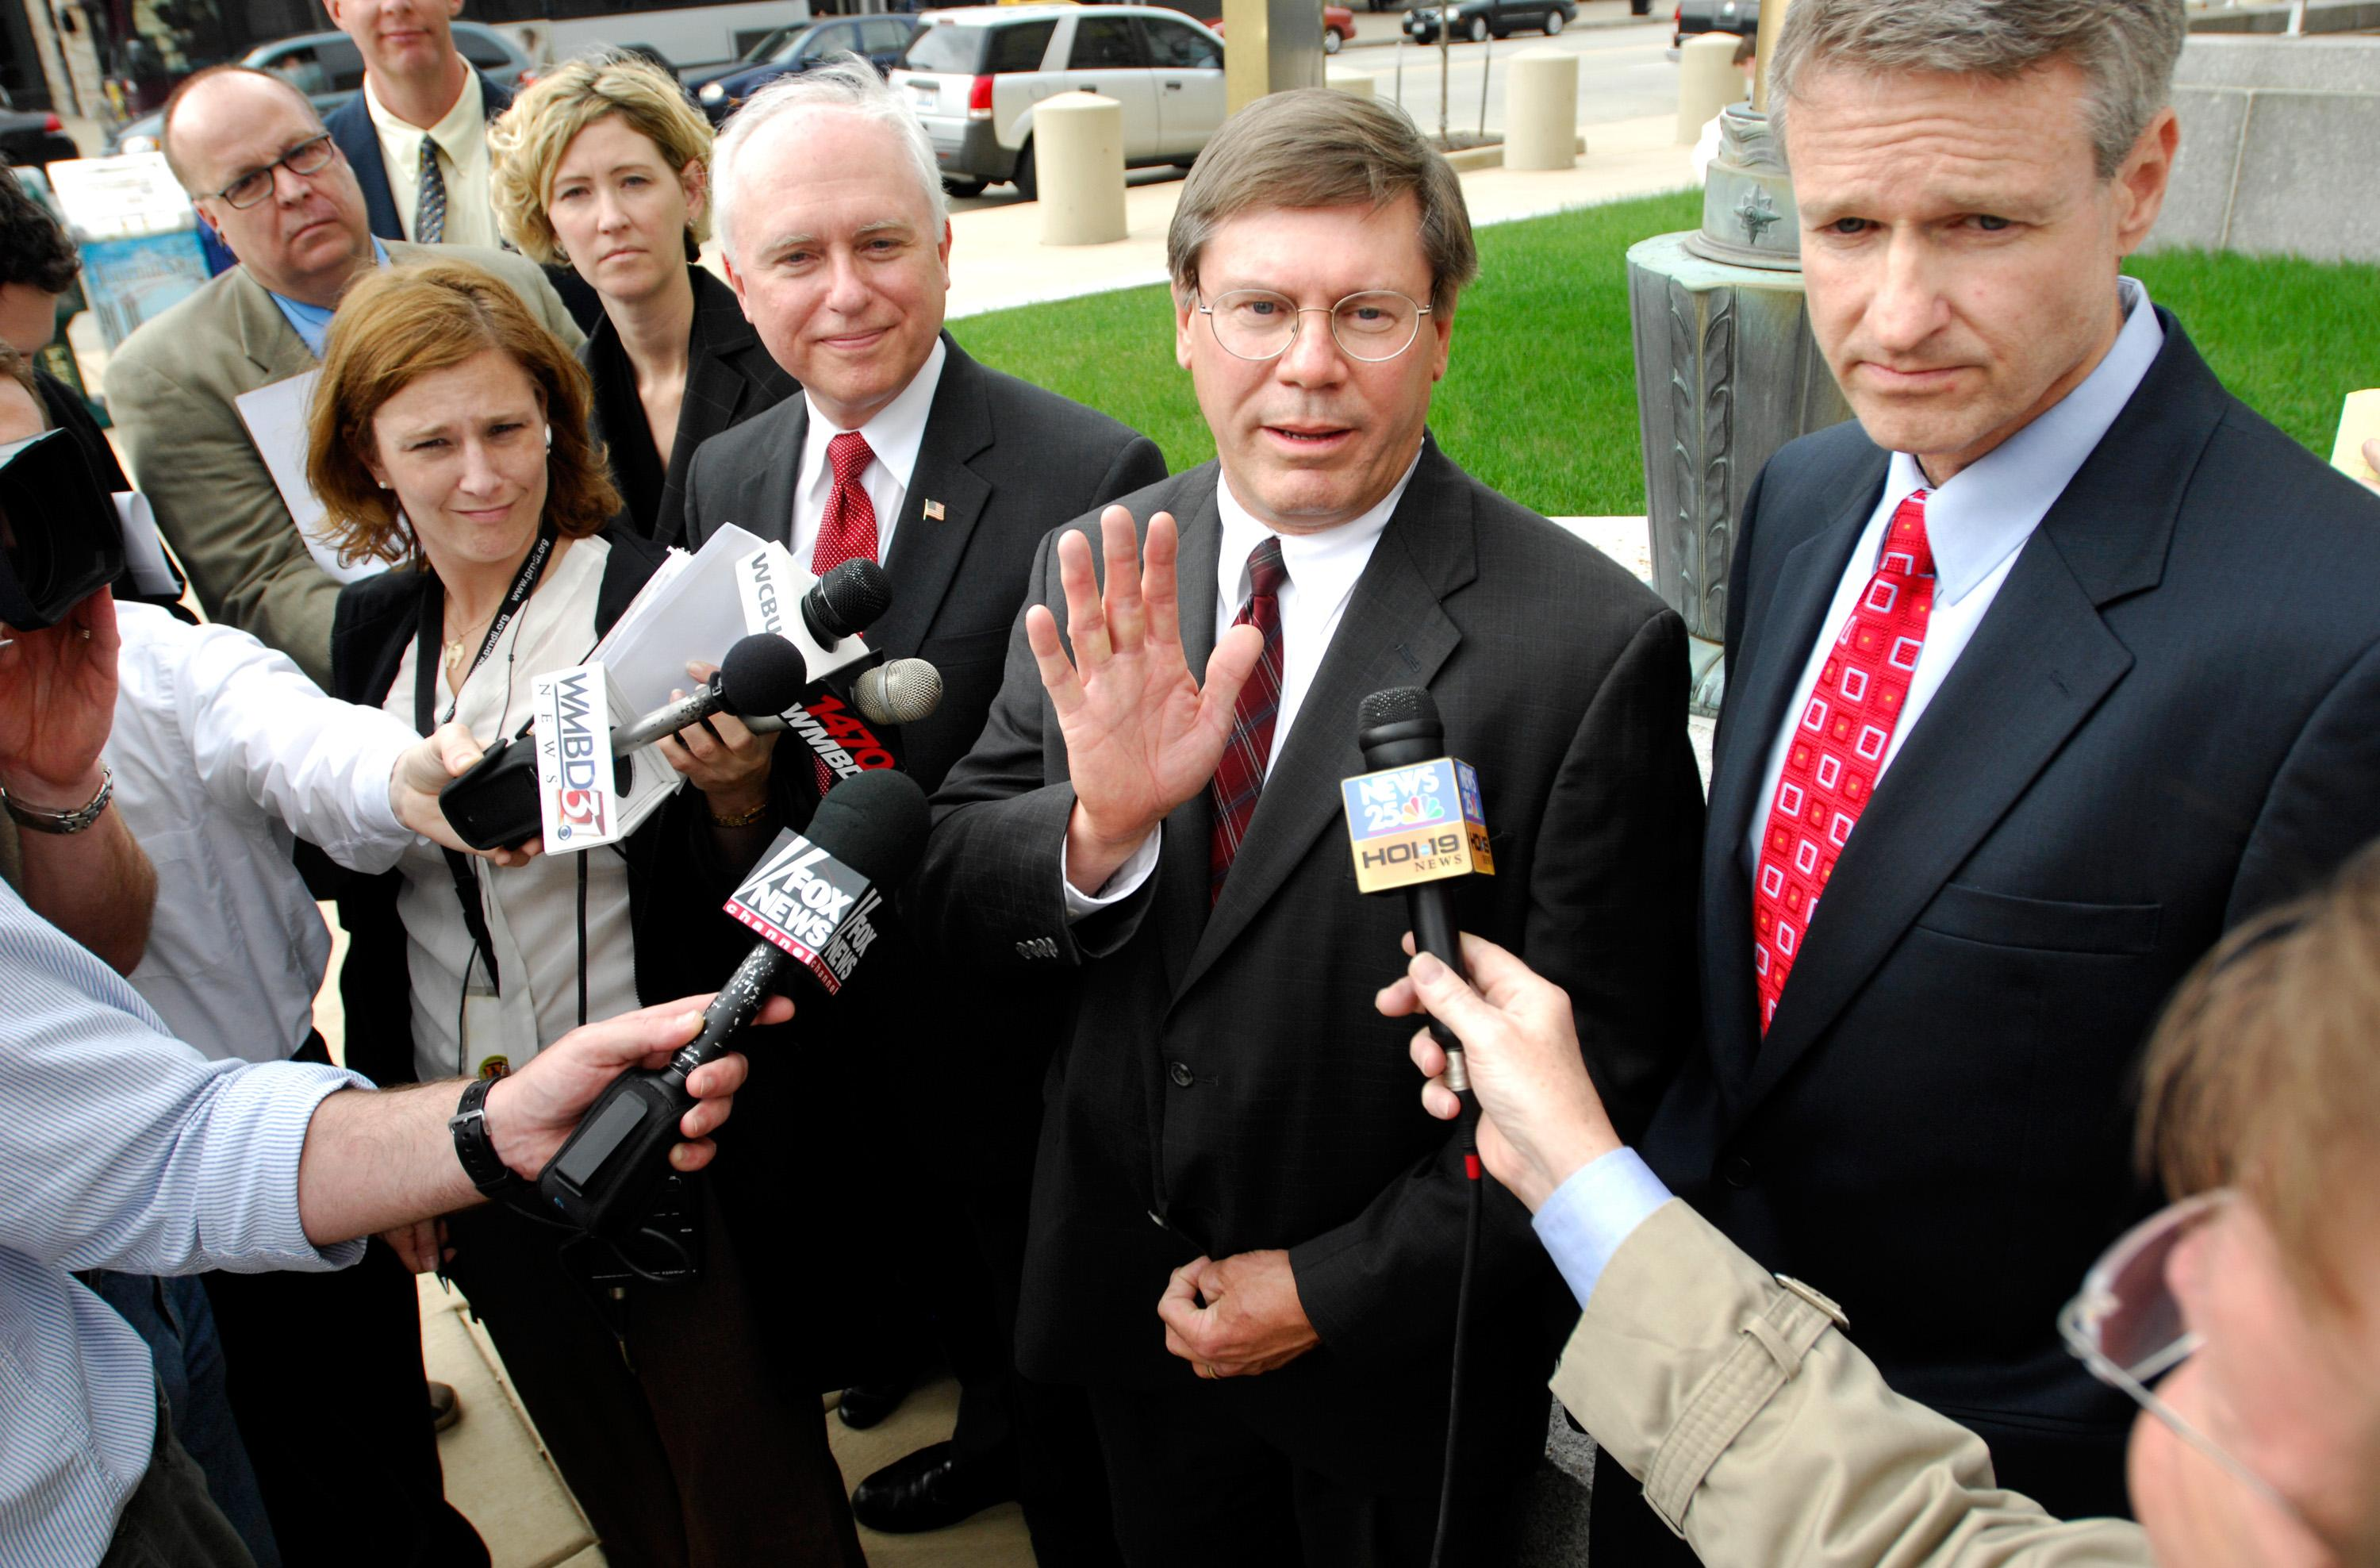 Assistant U.S. Attorney Jeff Lang, center, speaks to the media after Ali al-Marri pleaded guilty April 30, 2009, to a conspiracy count at the U.S. District Courthouse in Peoria. Lang is flanked by Assistant U.S. Attorney David Risley, left, and John Stafford, FBI assistant special agent.